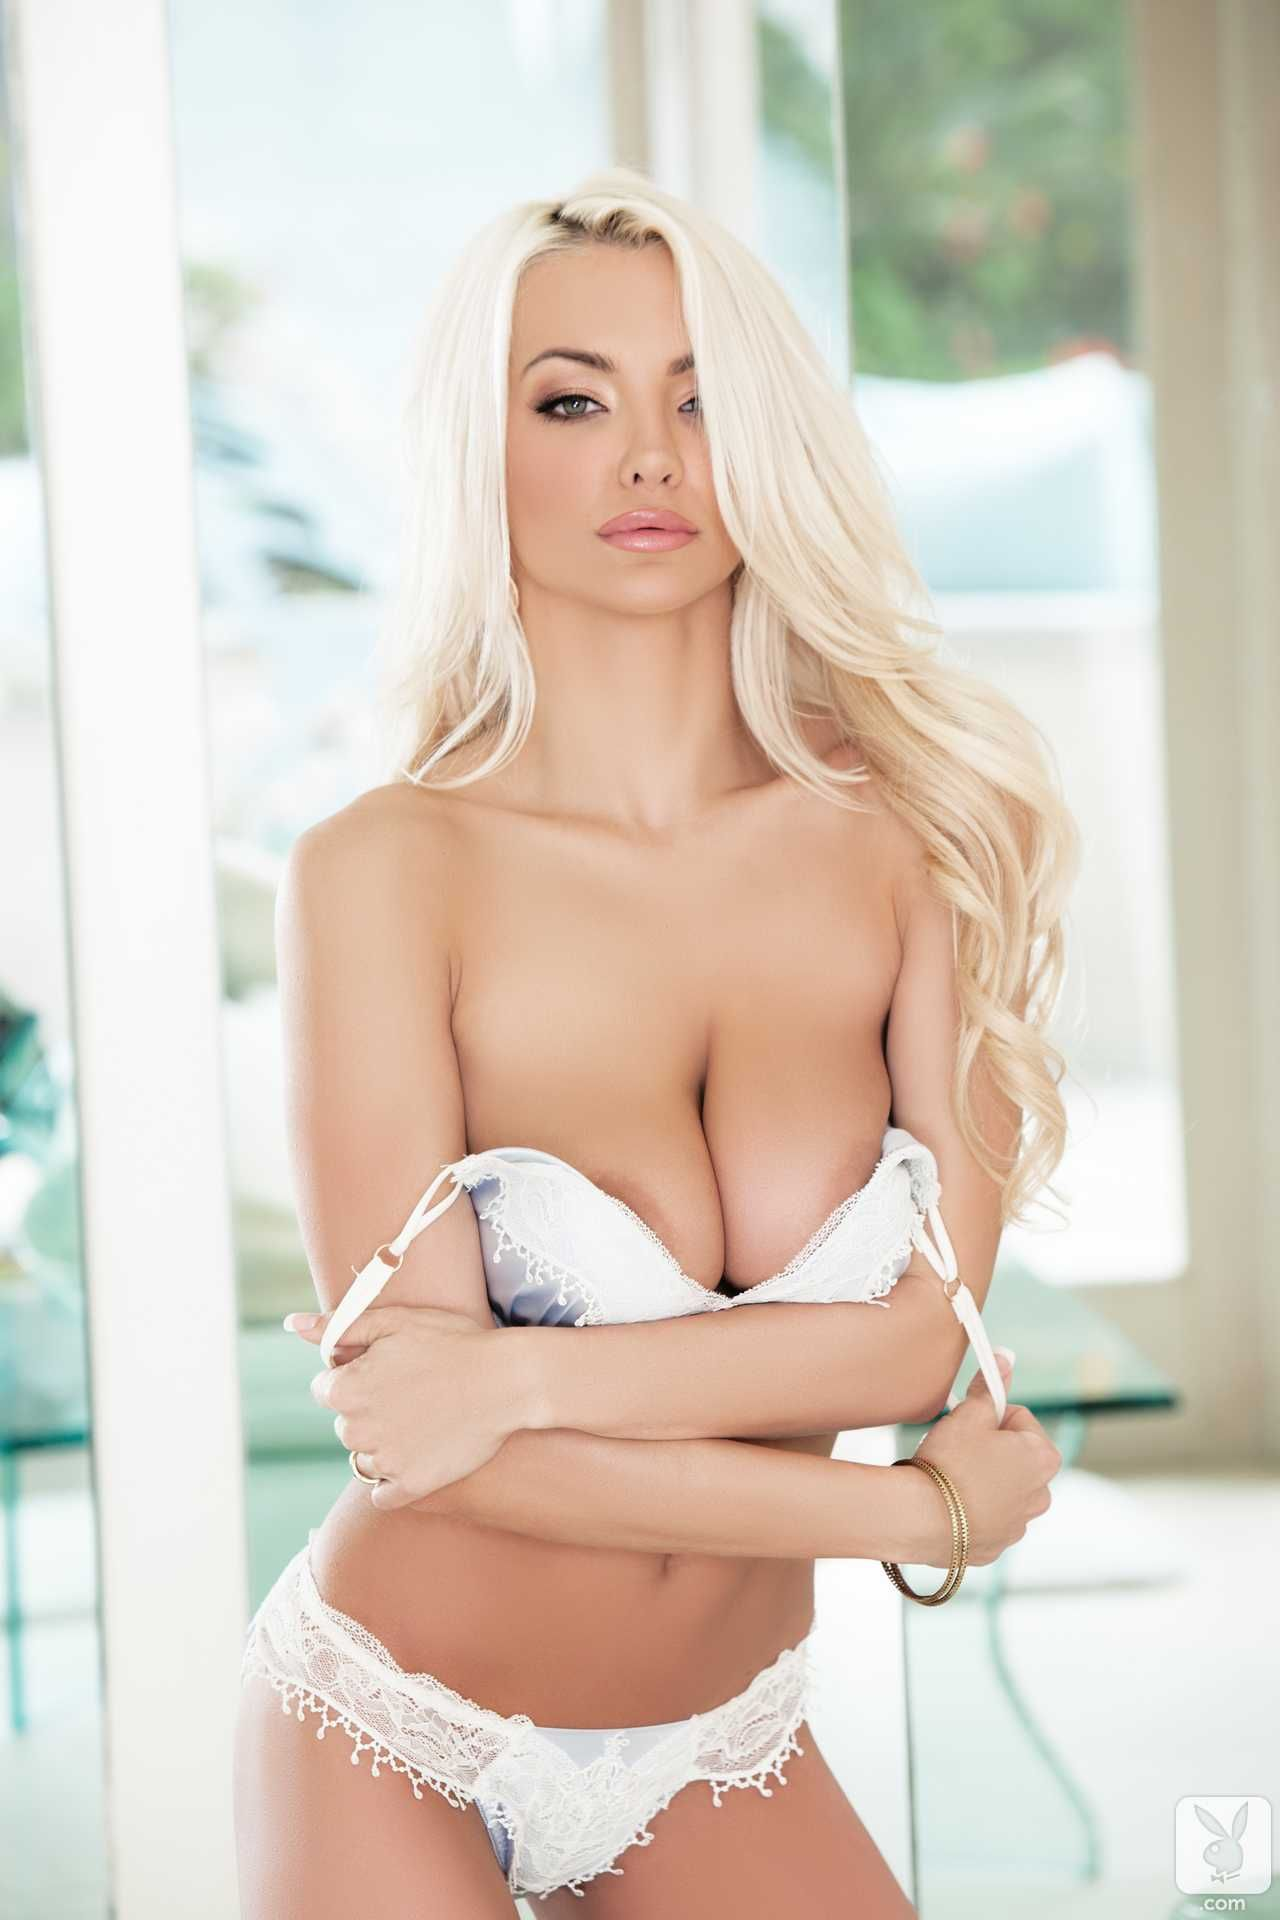 Watch Lindsey Pelas Sexy - 20 Photos Gifs Video video